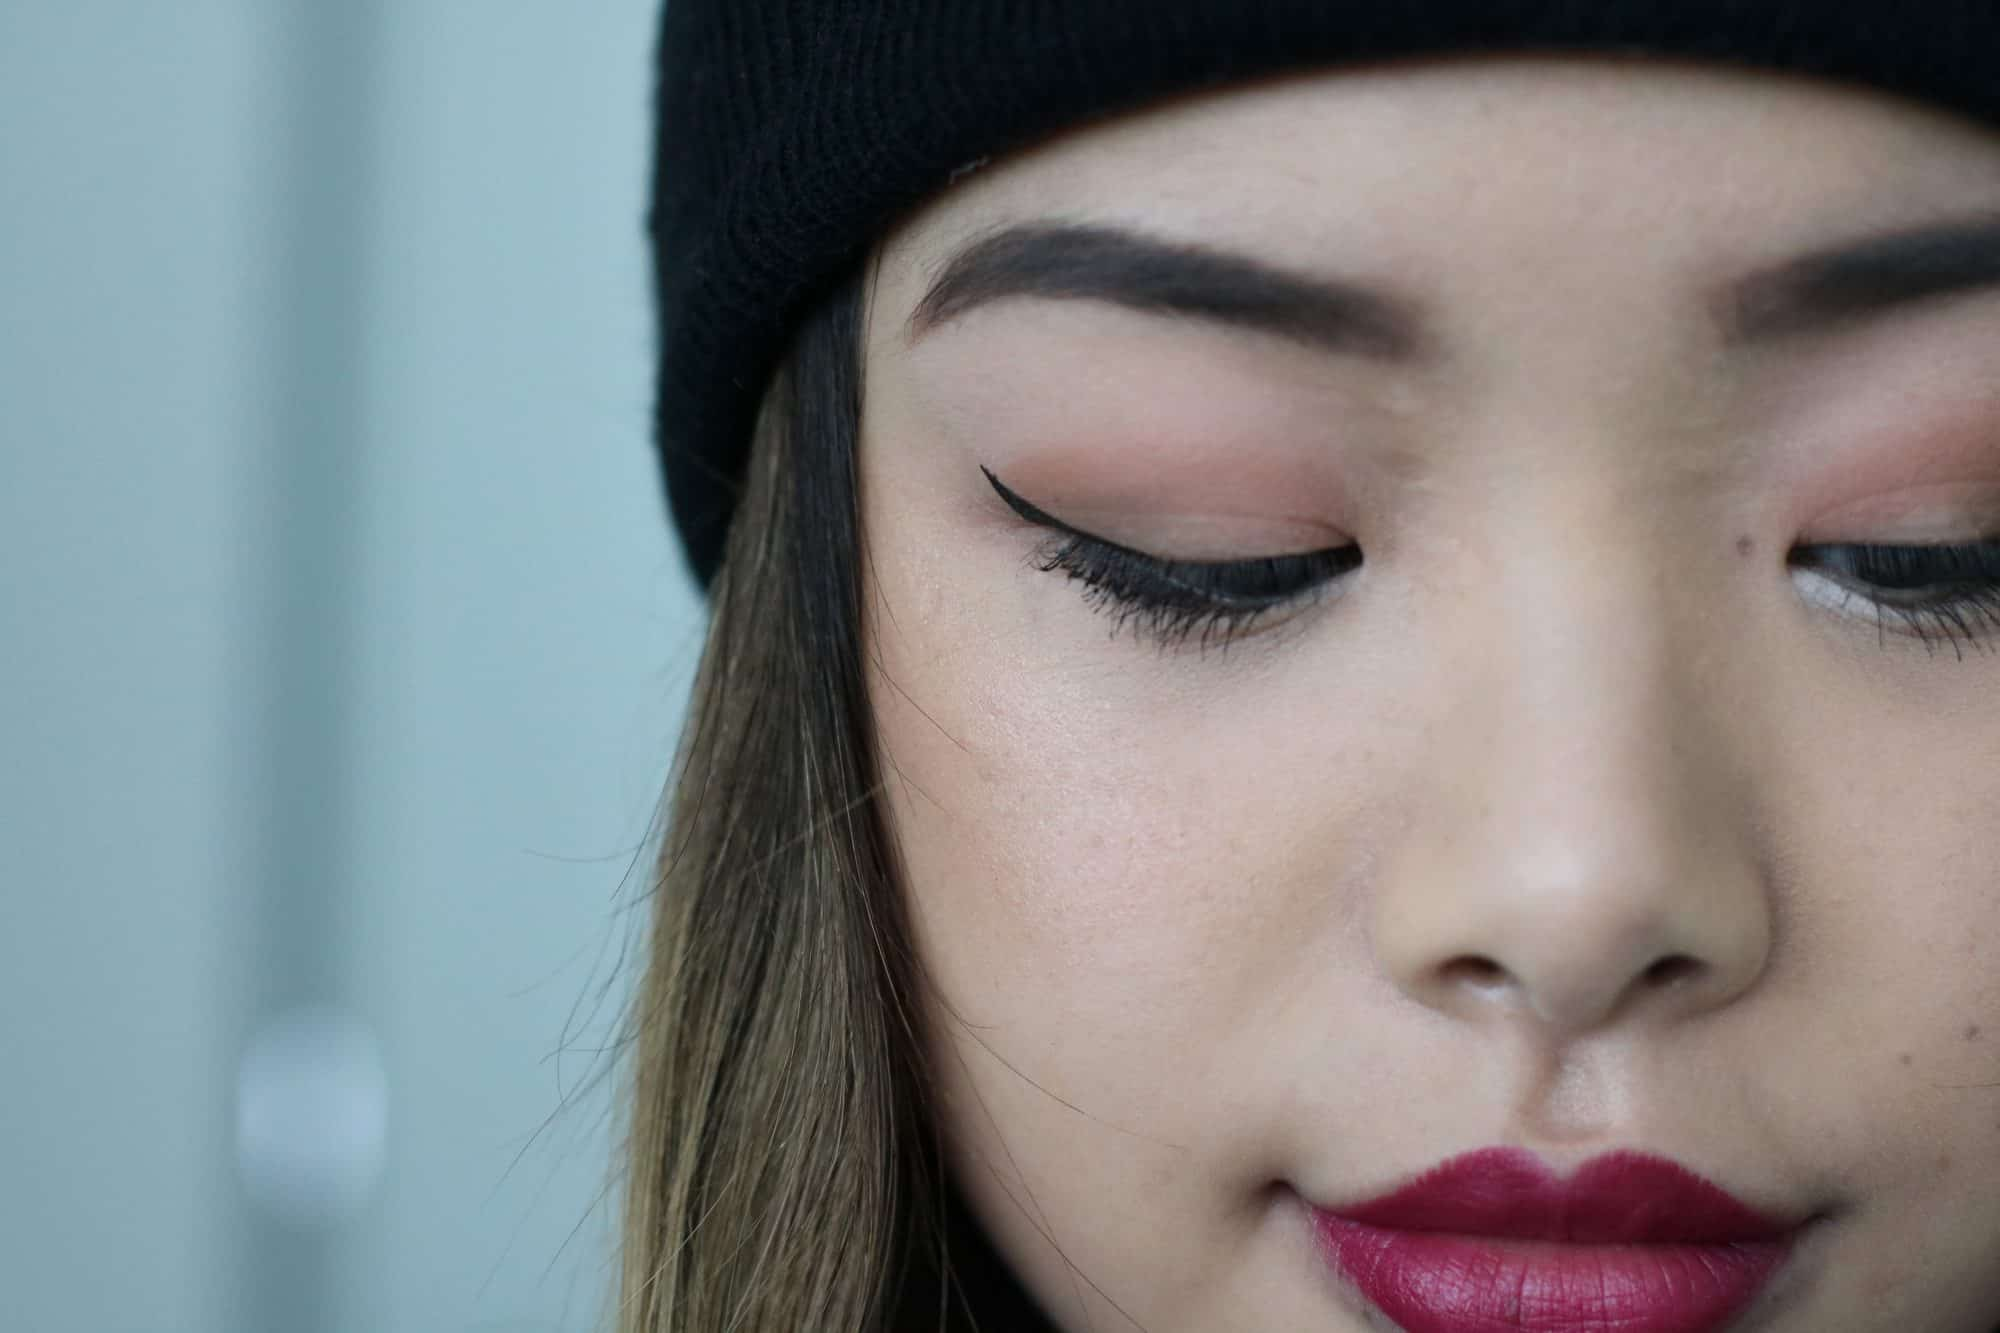 My everyday fall/winter makeup routine